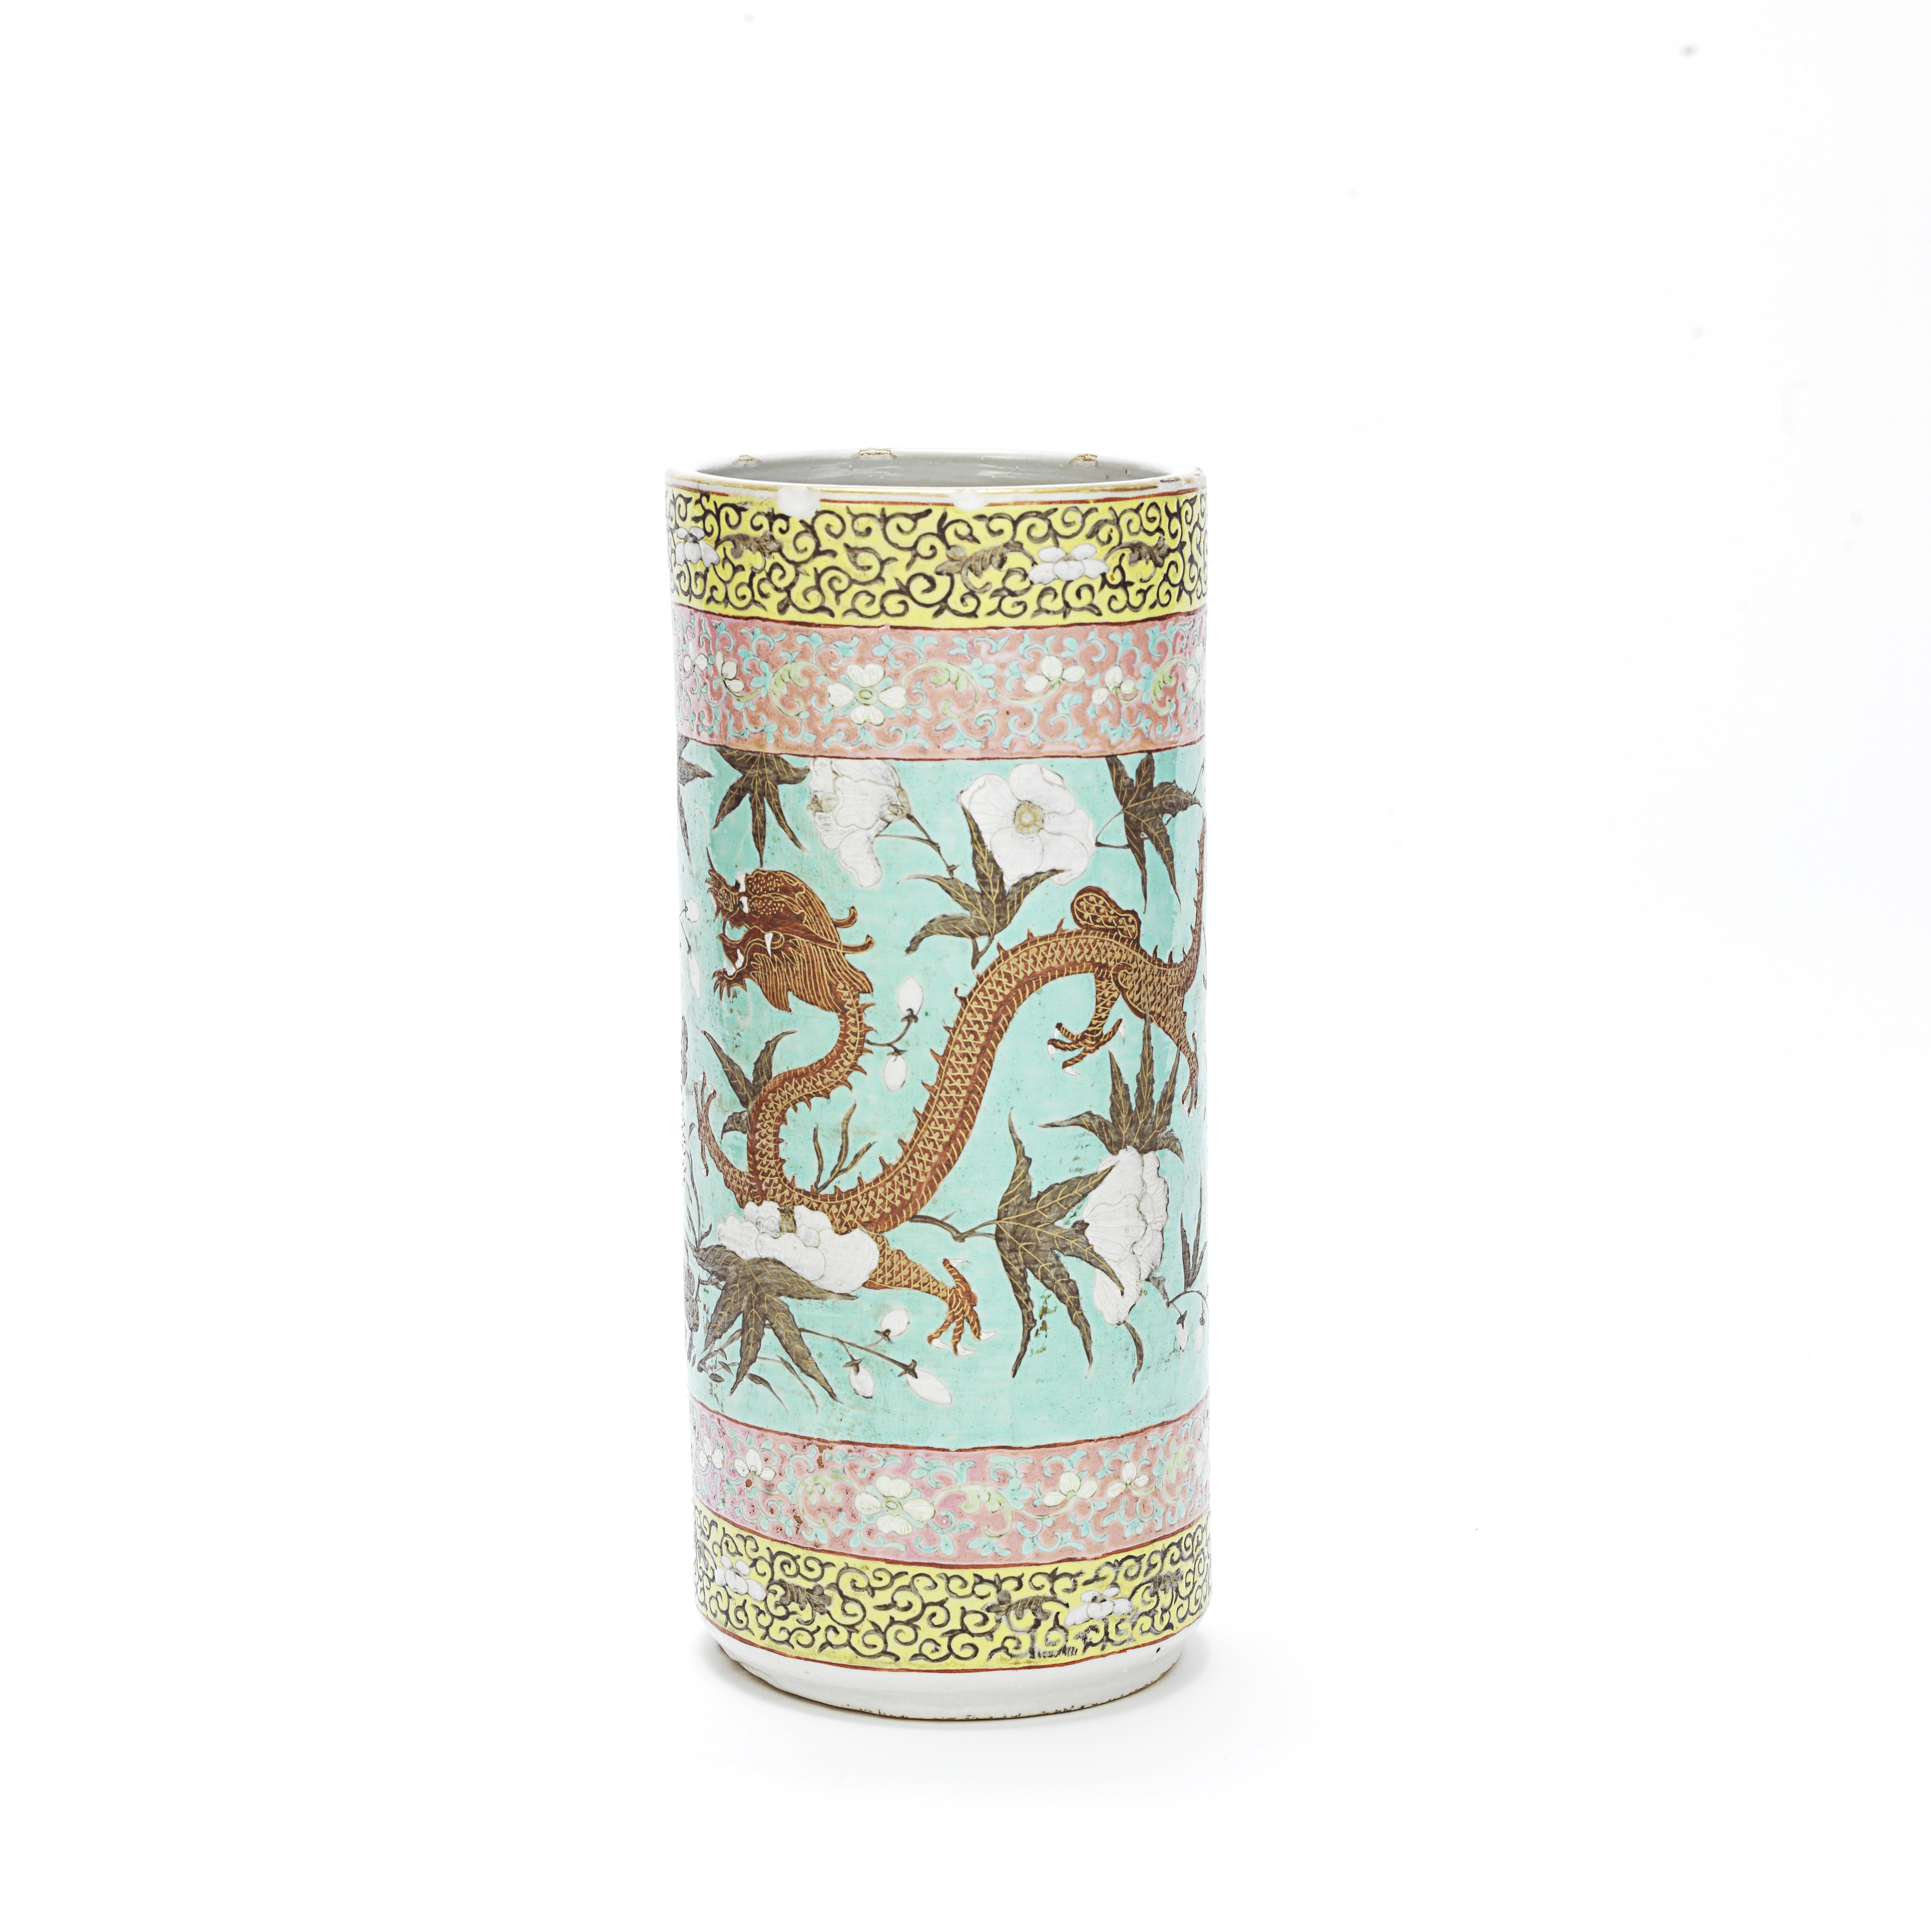 A FAMILLE ROSE DAYAZHAI-STYLE CYLINDRICAL VASE Late Qing Dynasty